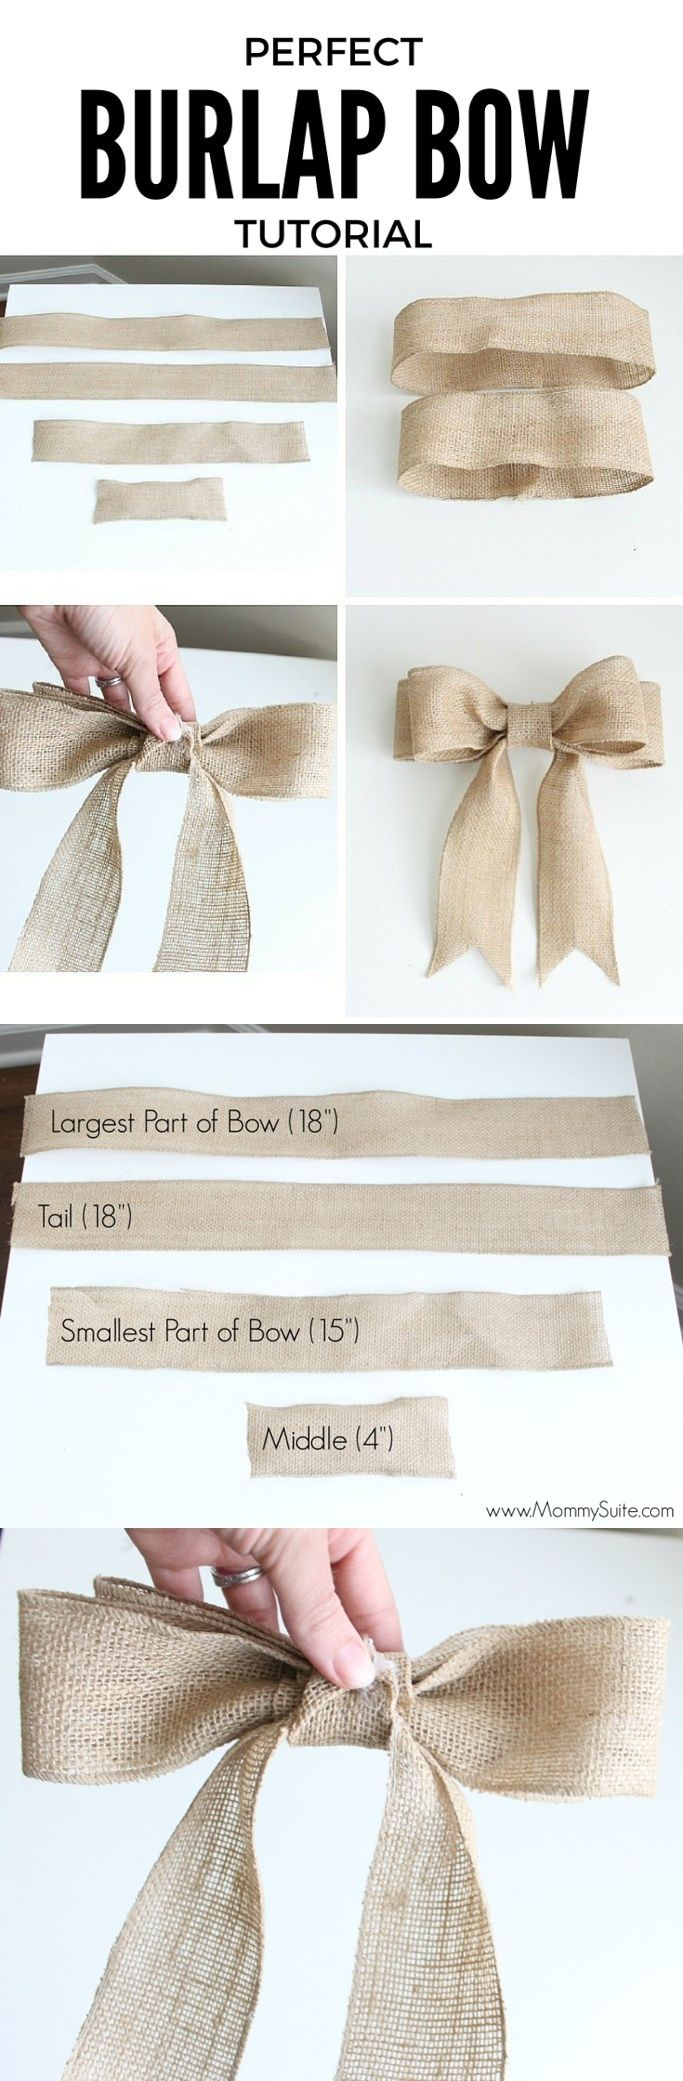 how to make a burlap bow tutorial